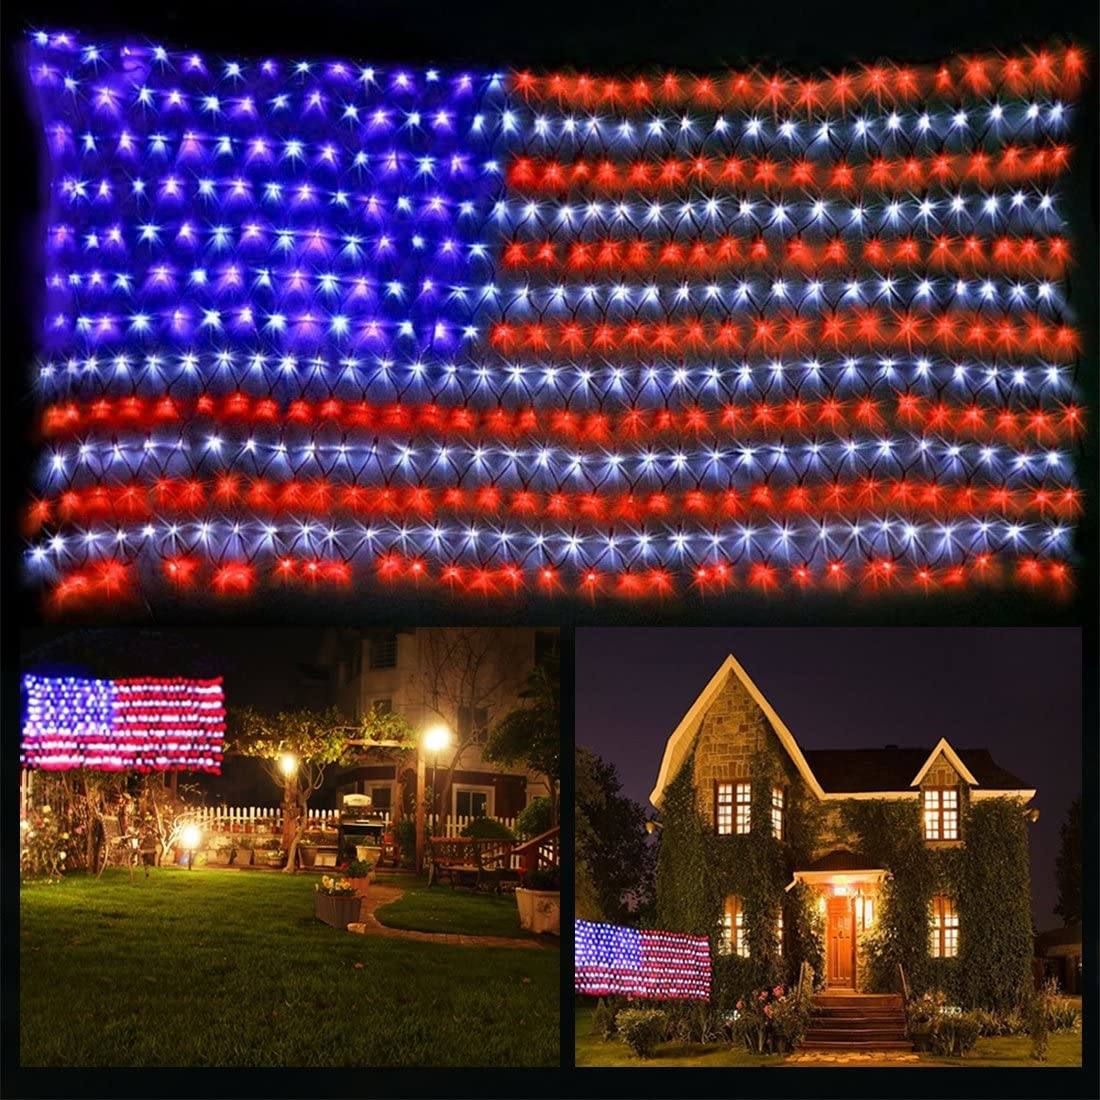 FUNIAO 420 LED American Flag String Lights, 6.5ft×3.3ft Large USA Flag Net Lights Outdoor Waterproof LED Net Mesh Lights for Independence Day Yard Garden Christmas Tree Party Patio Wall Decoration